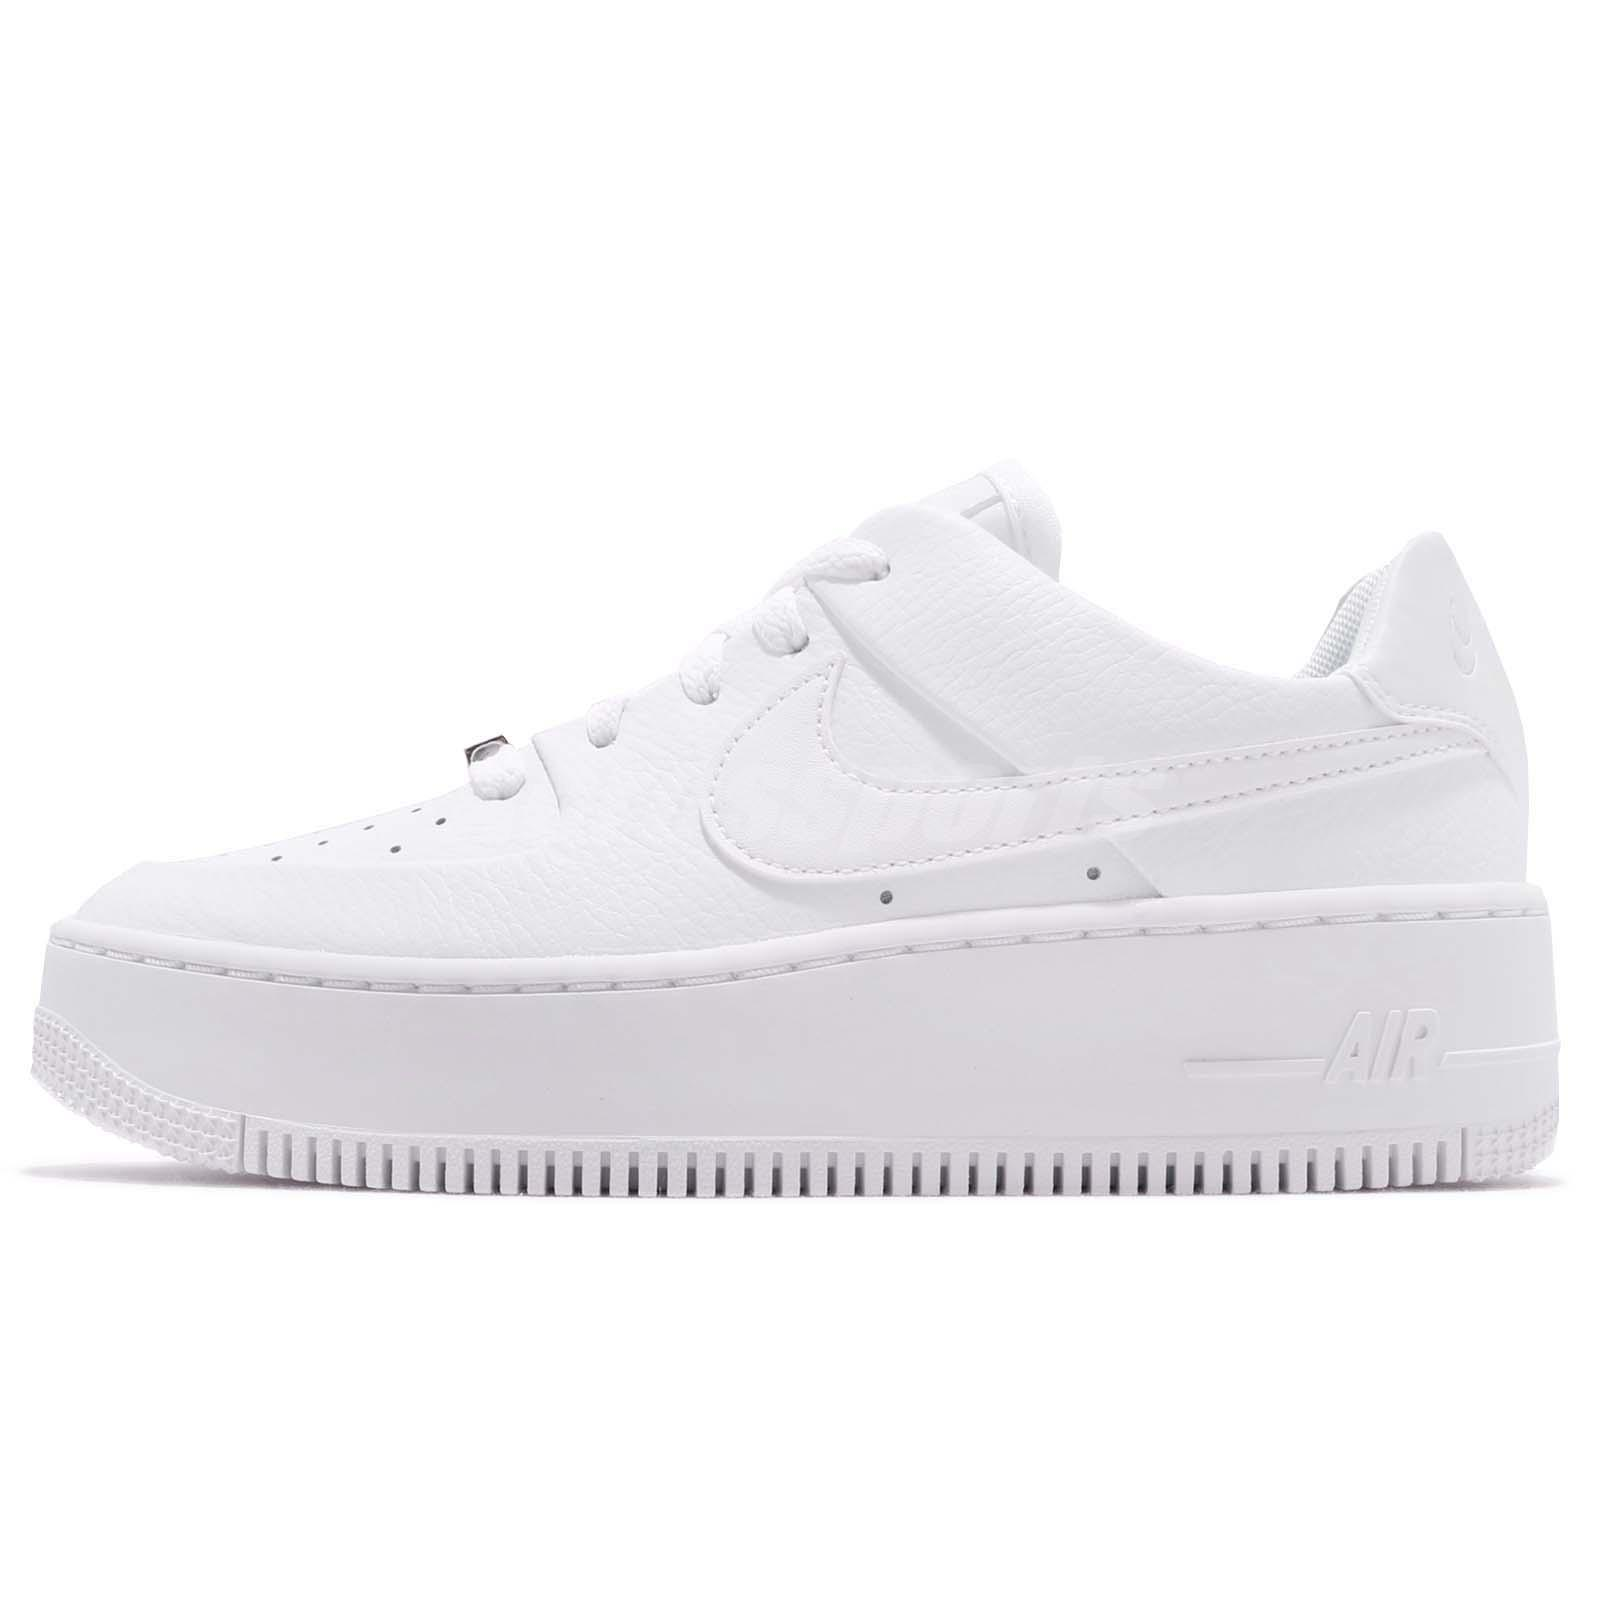 fcc9215d45d Nike Wmns AF1 Sage Low Triple White Air Force 1 Platform Womens Shoes  AR5339-100